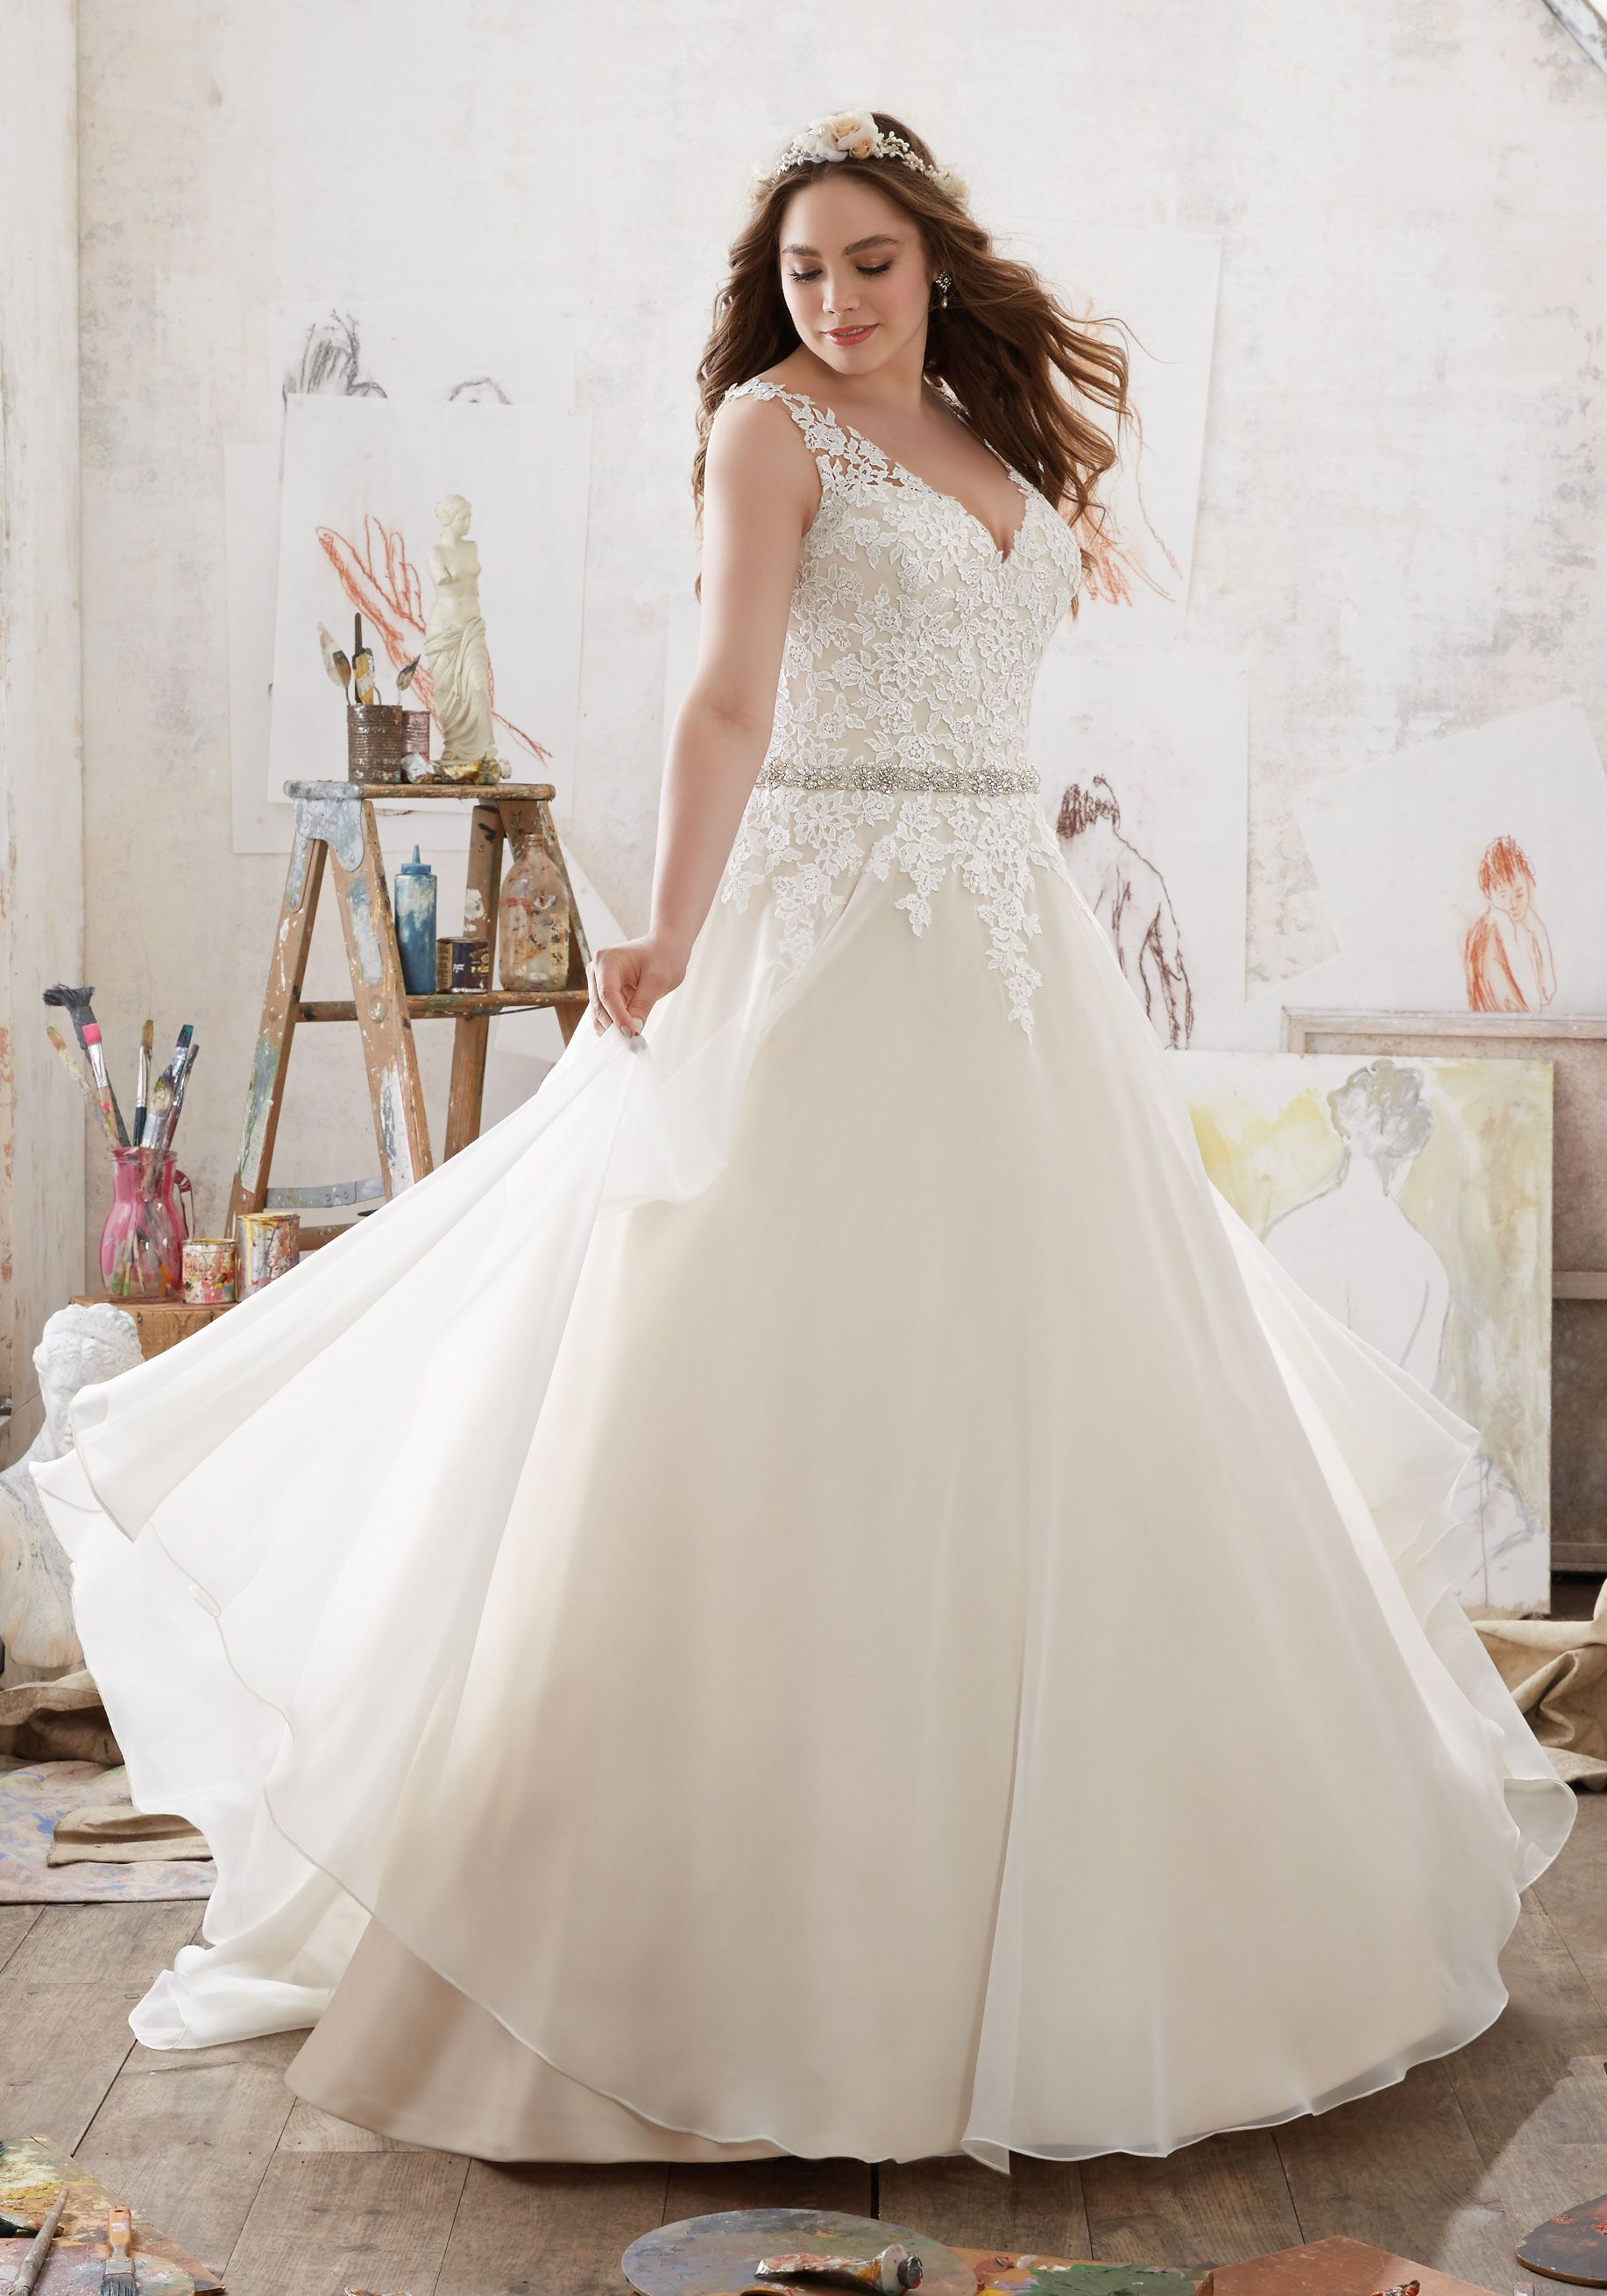 Friday, October 27, 2017 Julietta by Mori Lee style